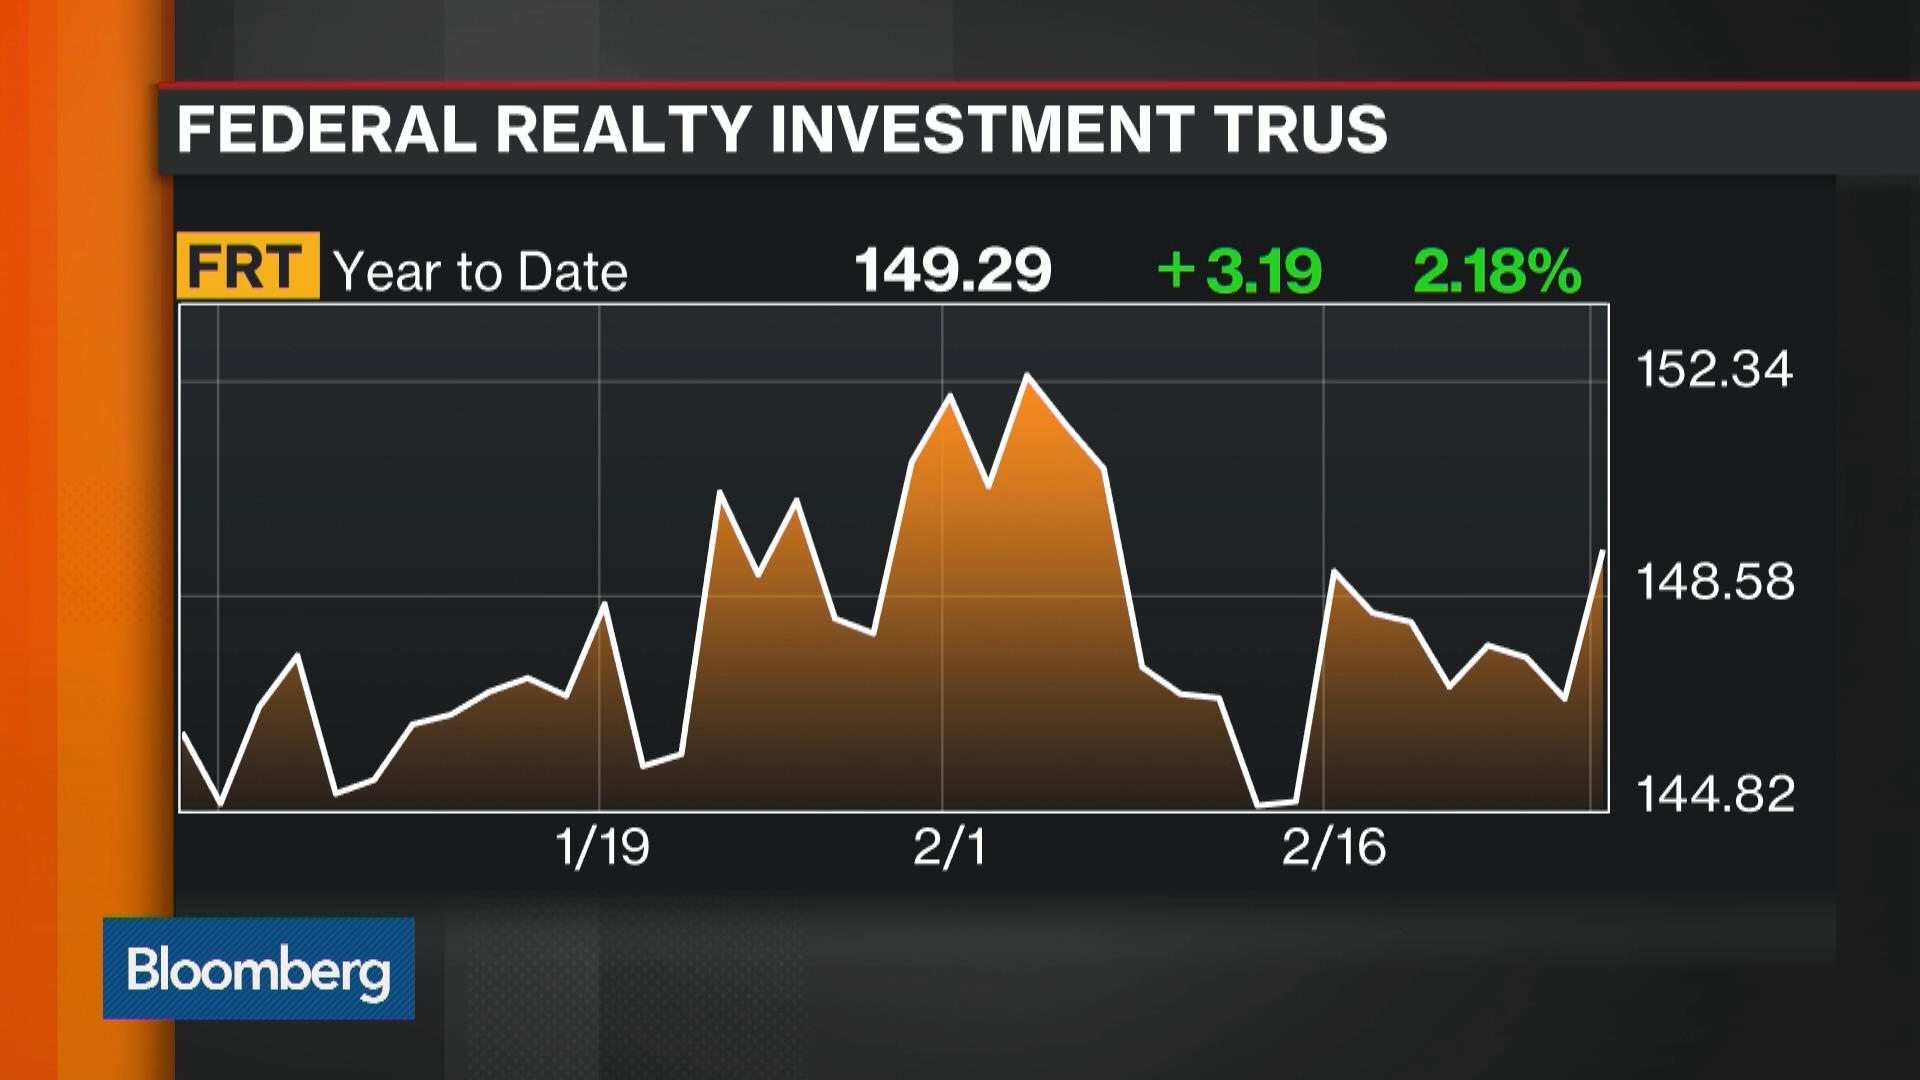 FRT:New York Stock Quote - Federal Realty Investment Trust